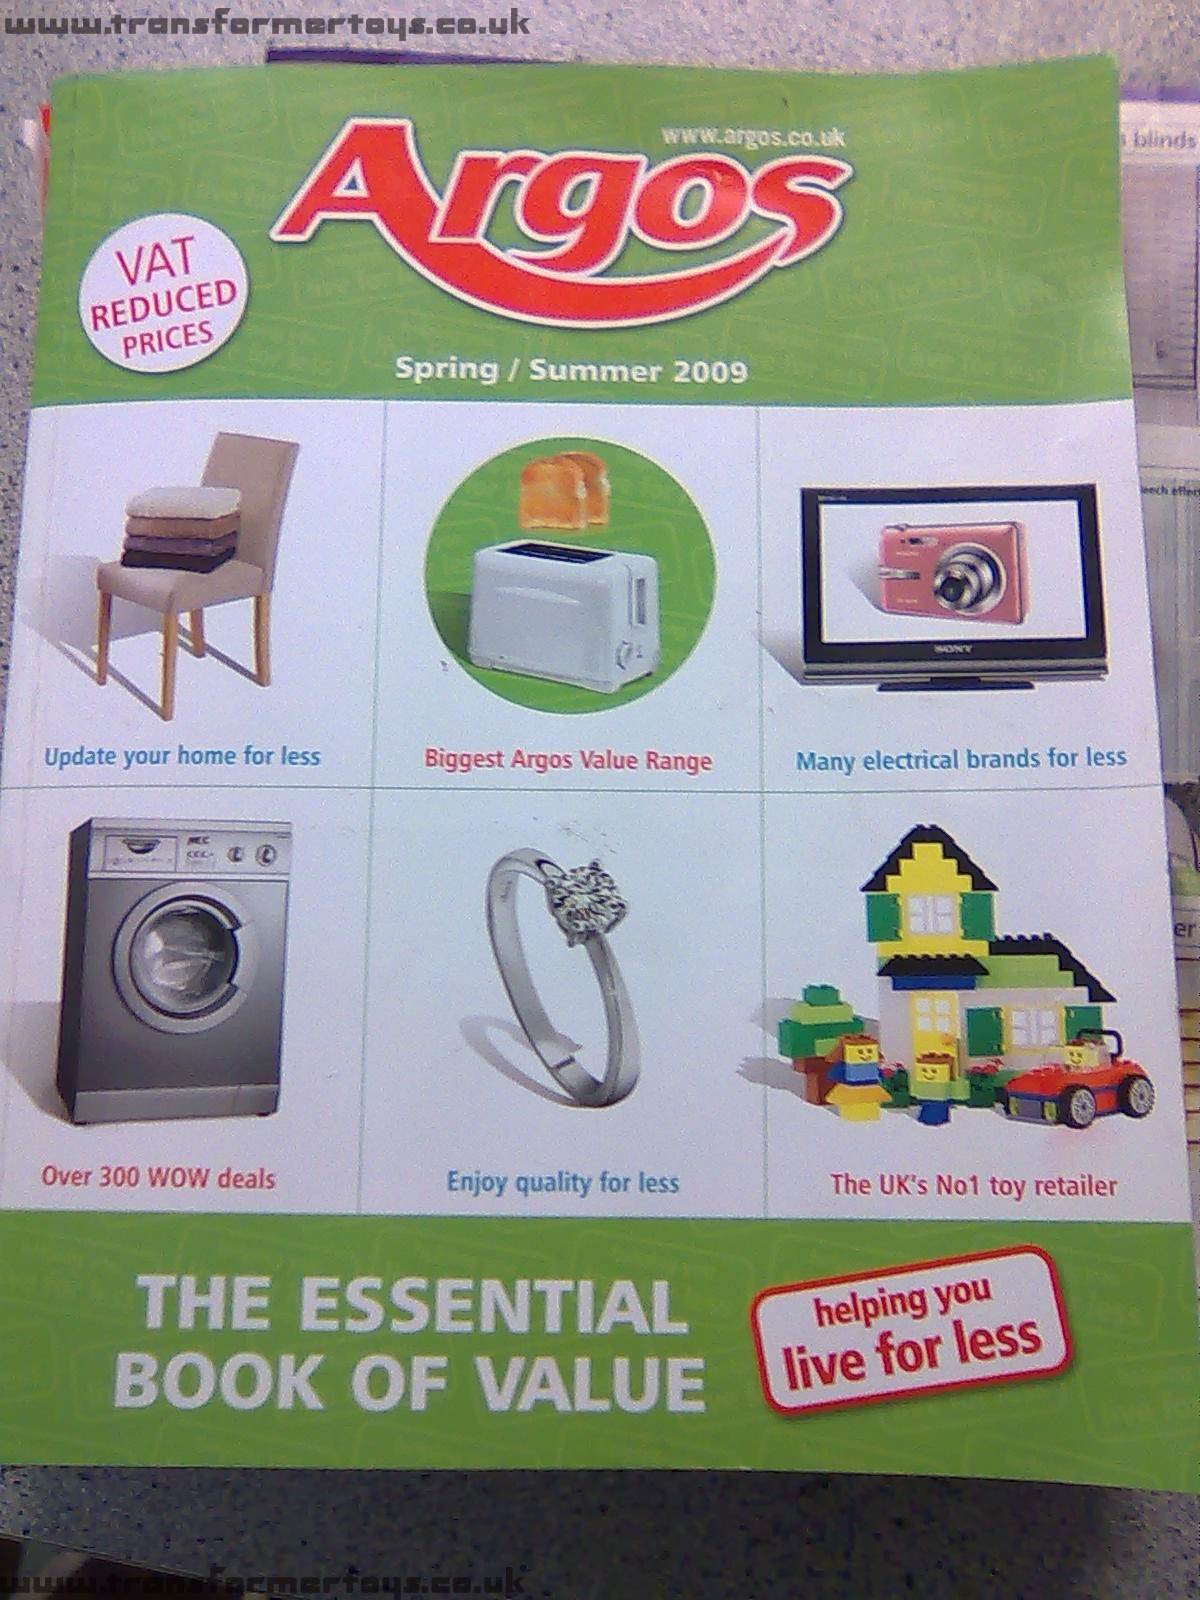 Now we just have Argos.